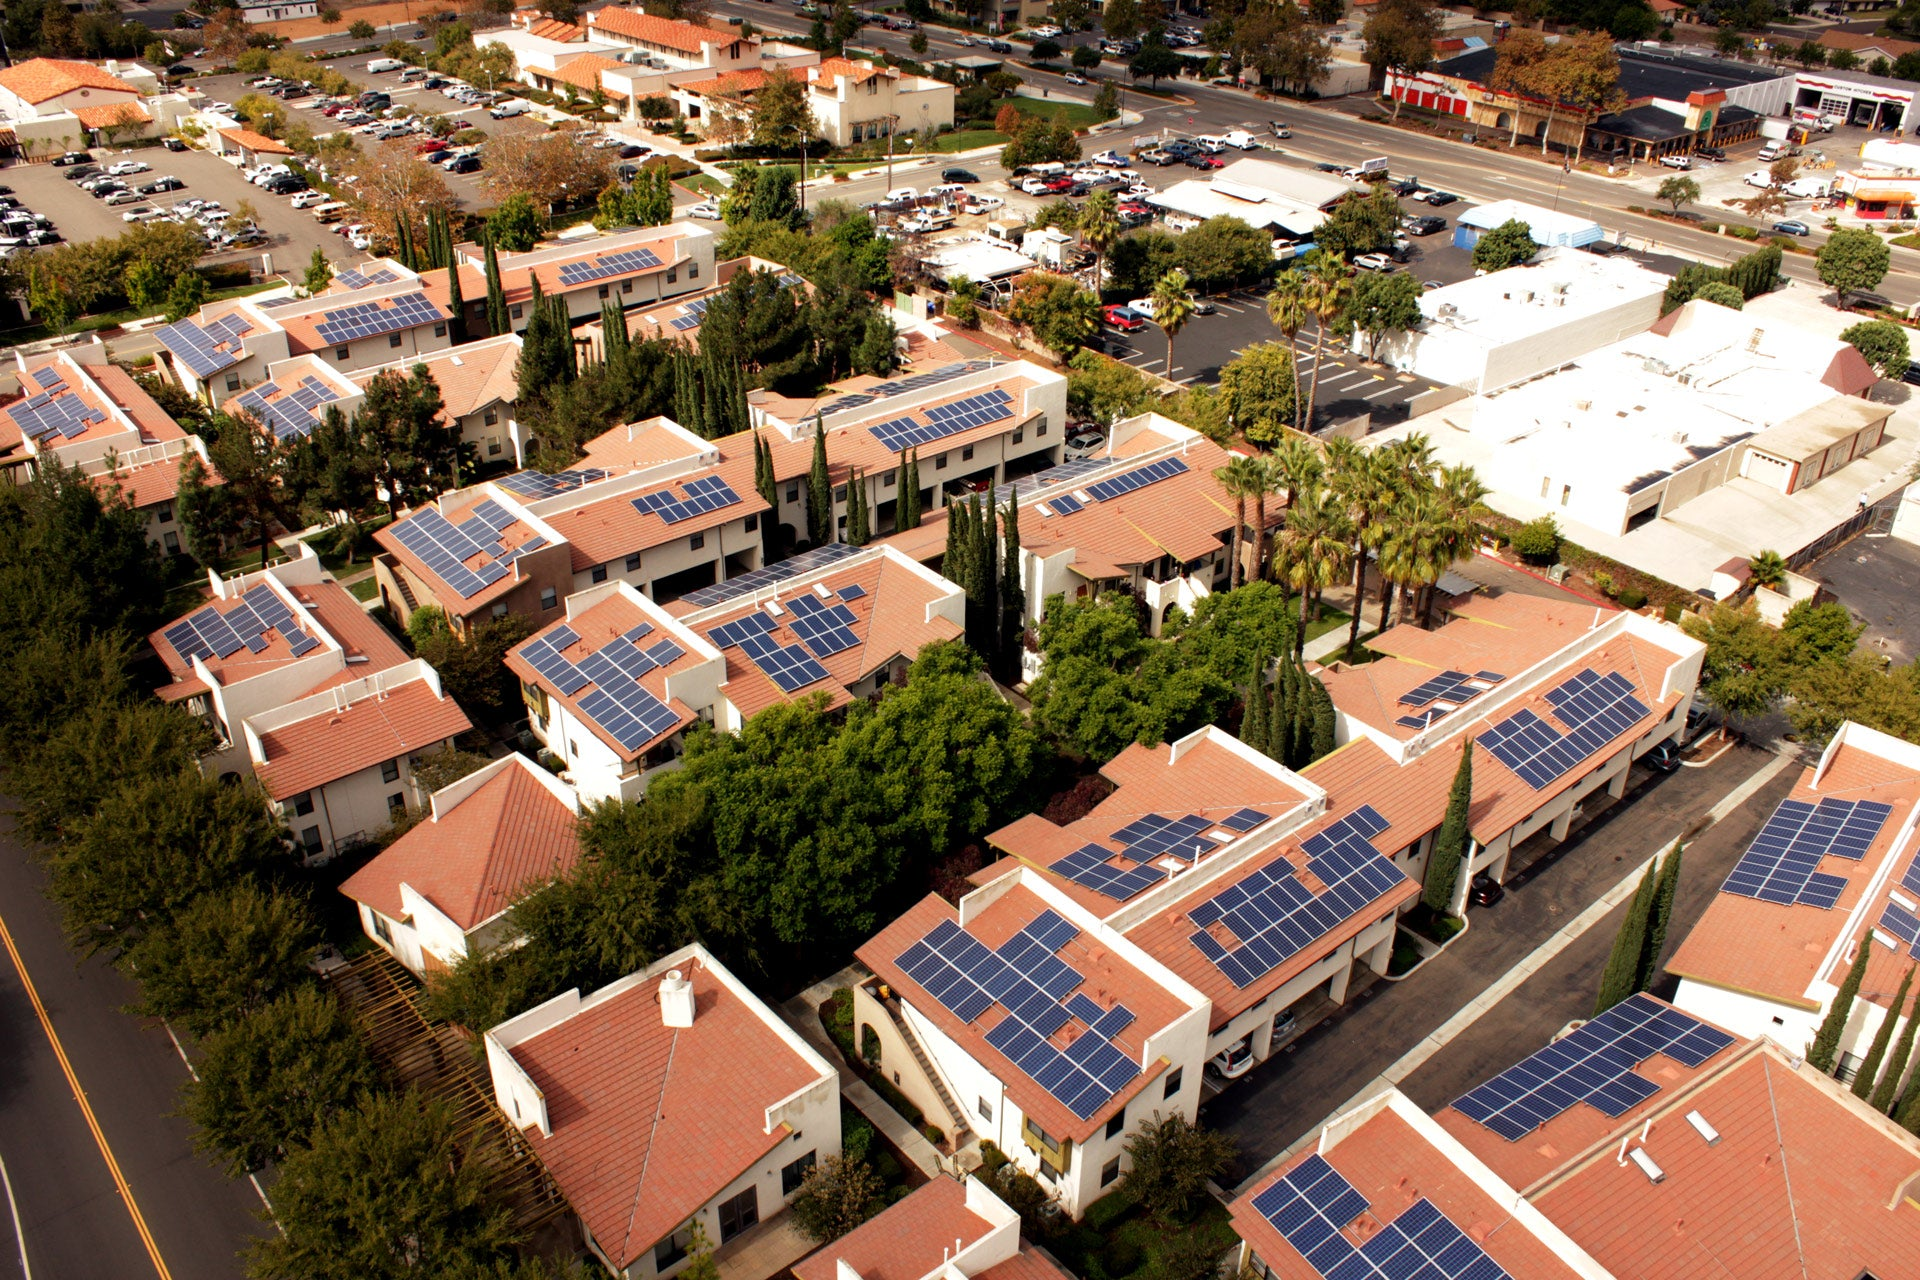 Solar Panel Installation For Homes In California And